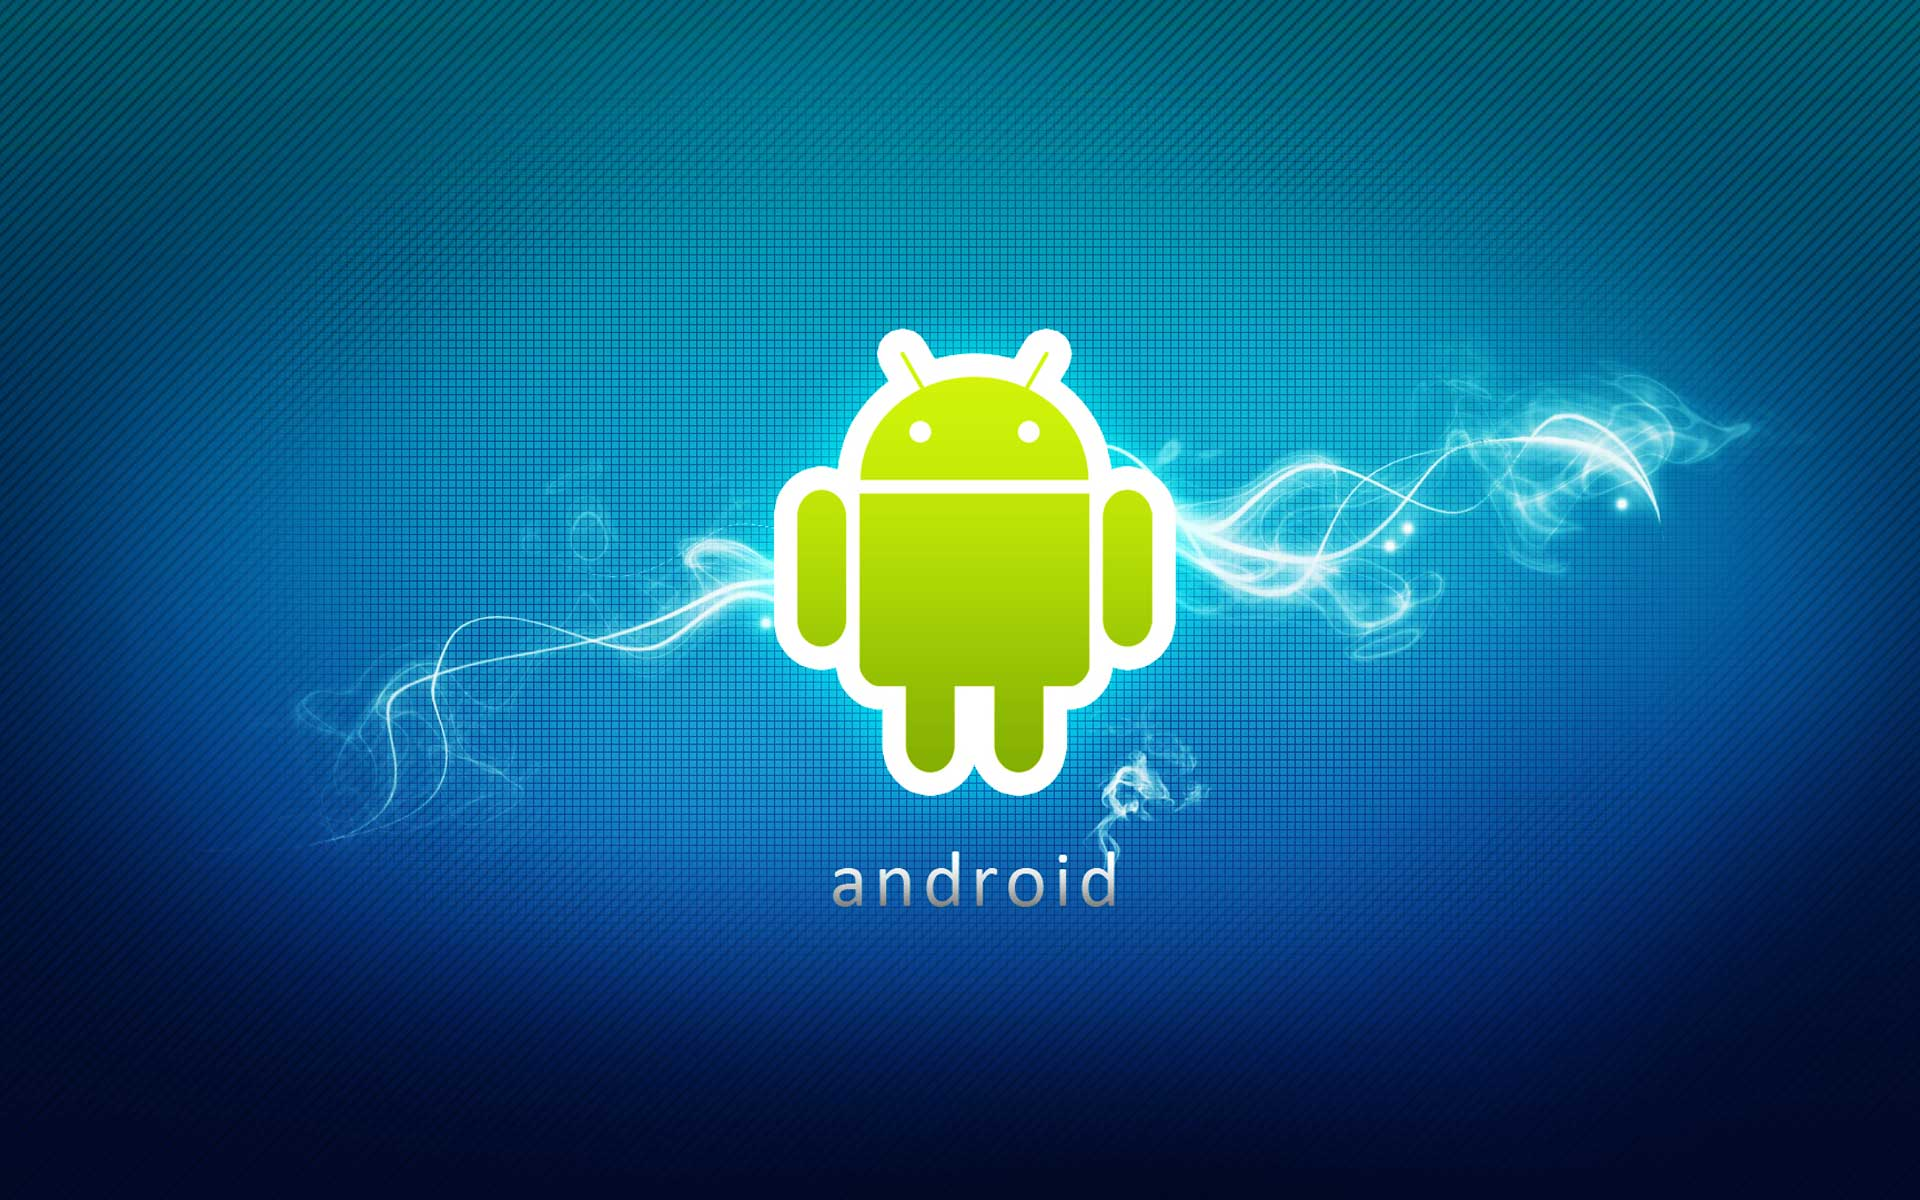 46 Android HD HD Wallpapers/Backgrounds For Free Download, HBC 333